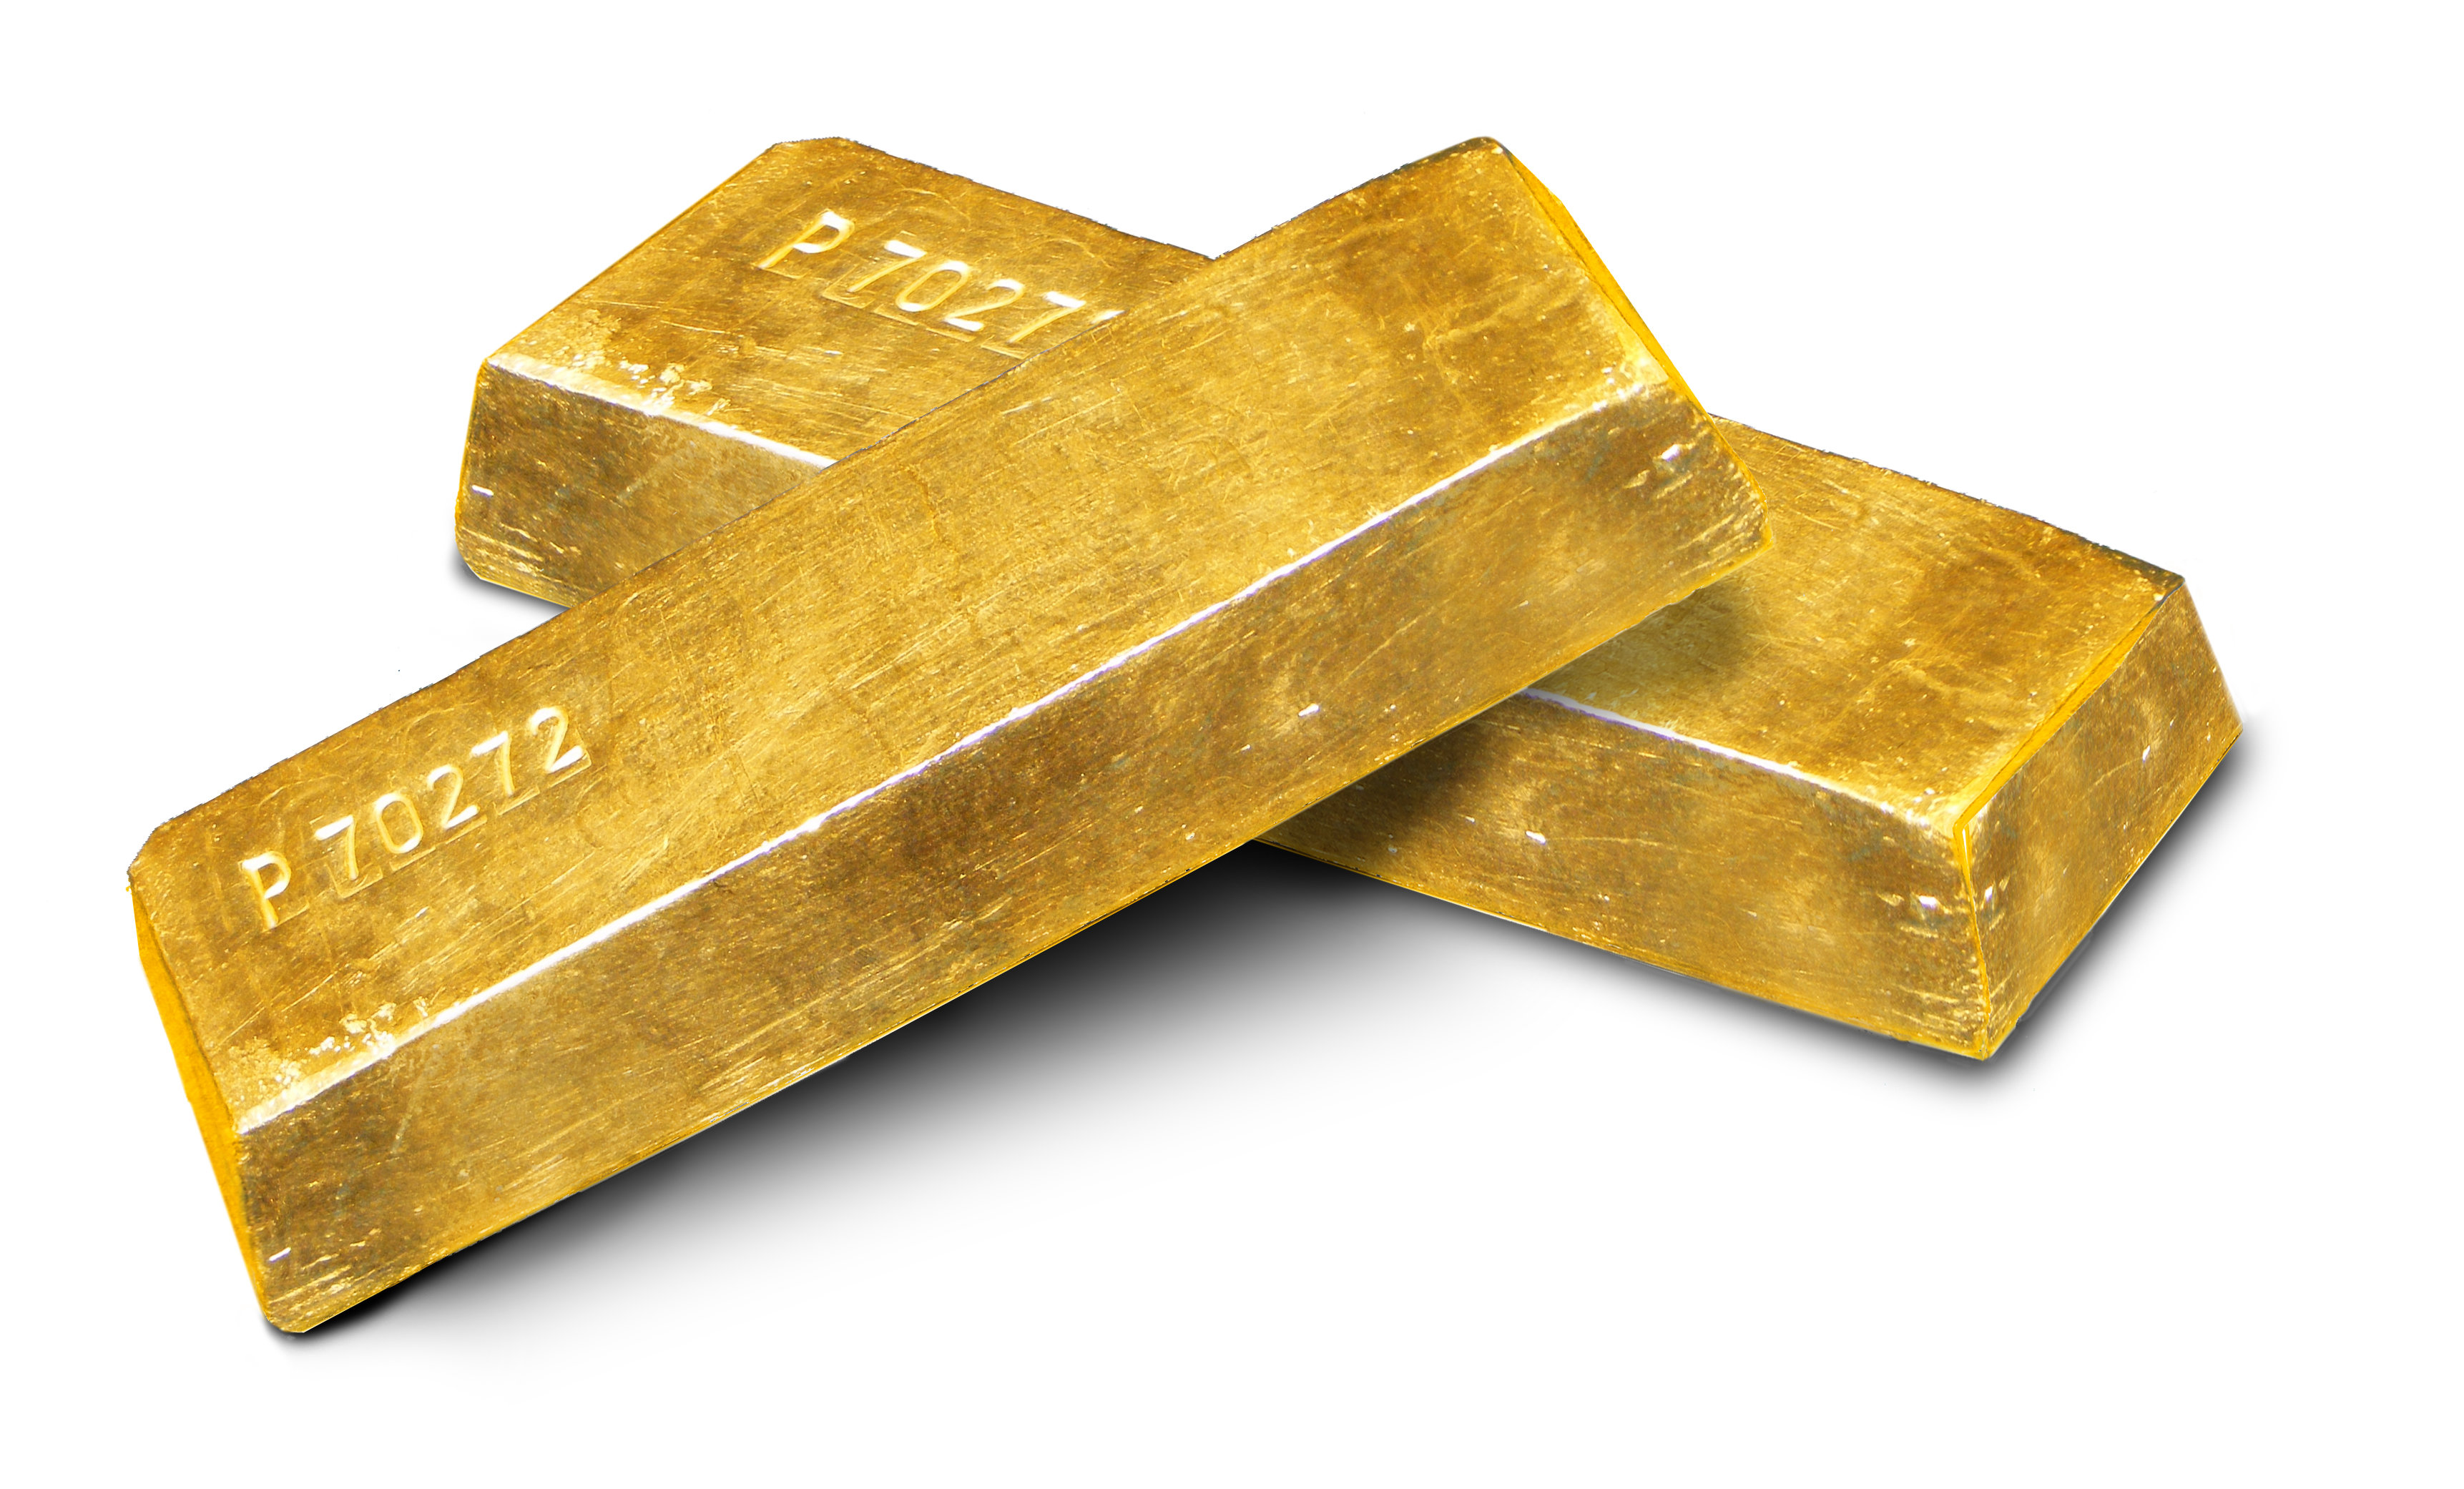 Gold recovers amidst fears over a weakening dollar - EMEA Brief 22 Nov